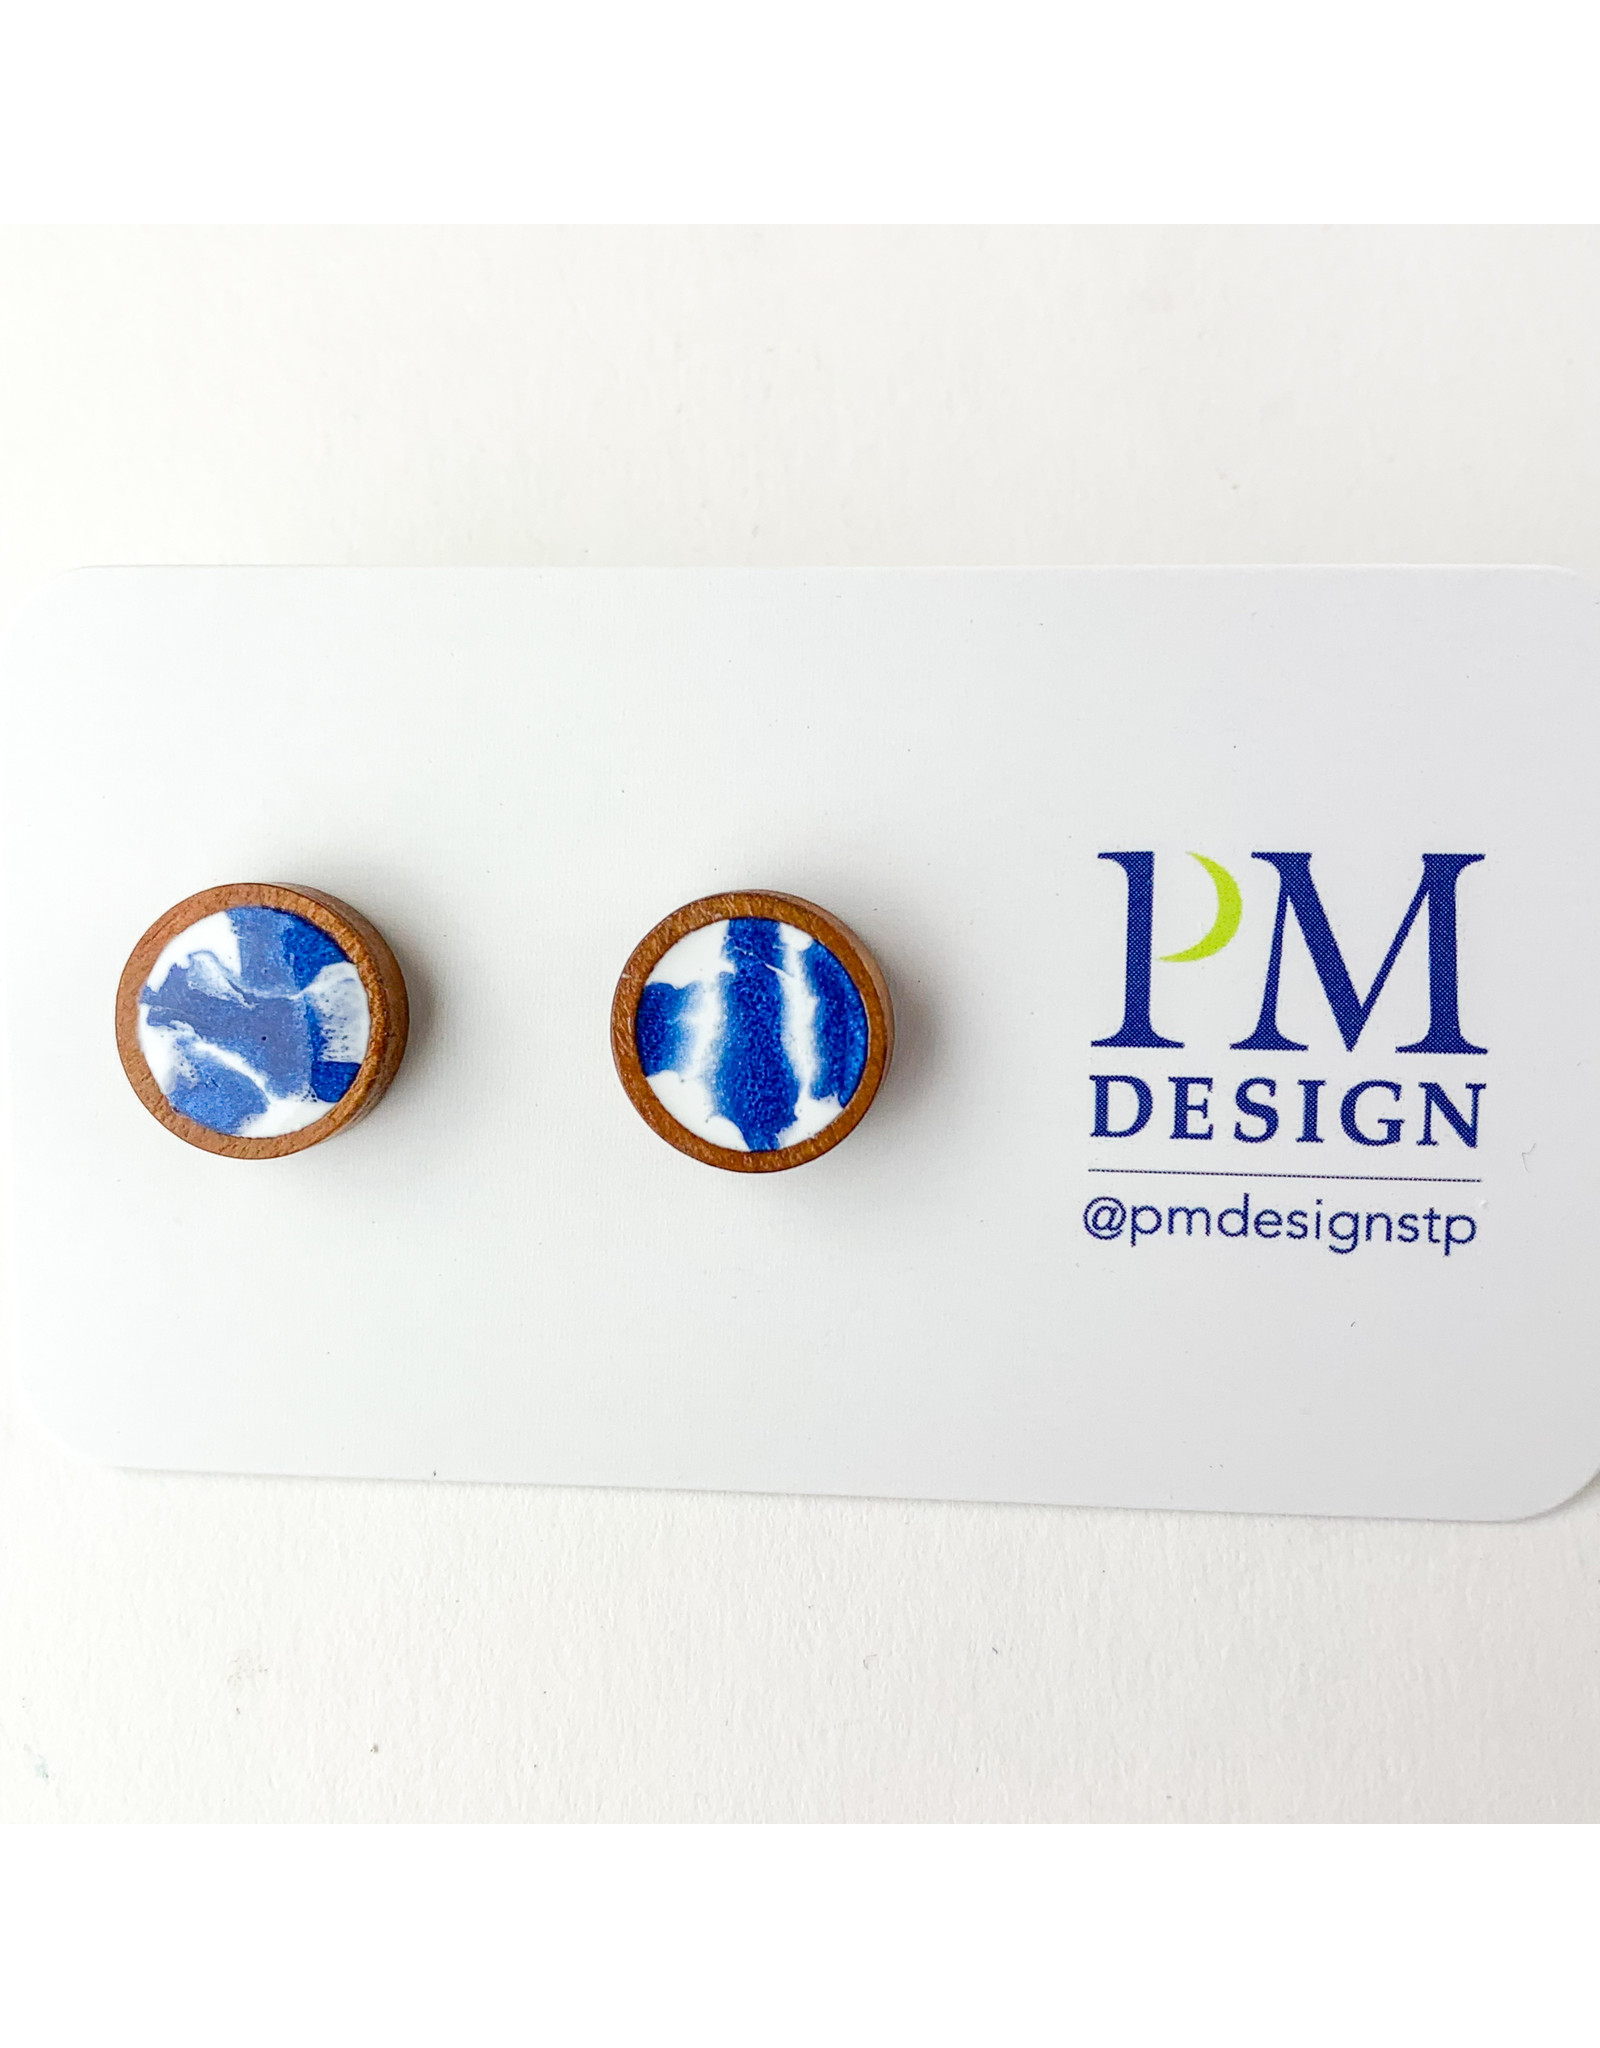 PM Design - Consignment Stud Consignment